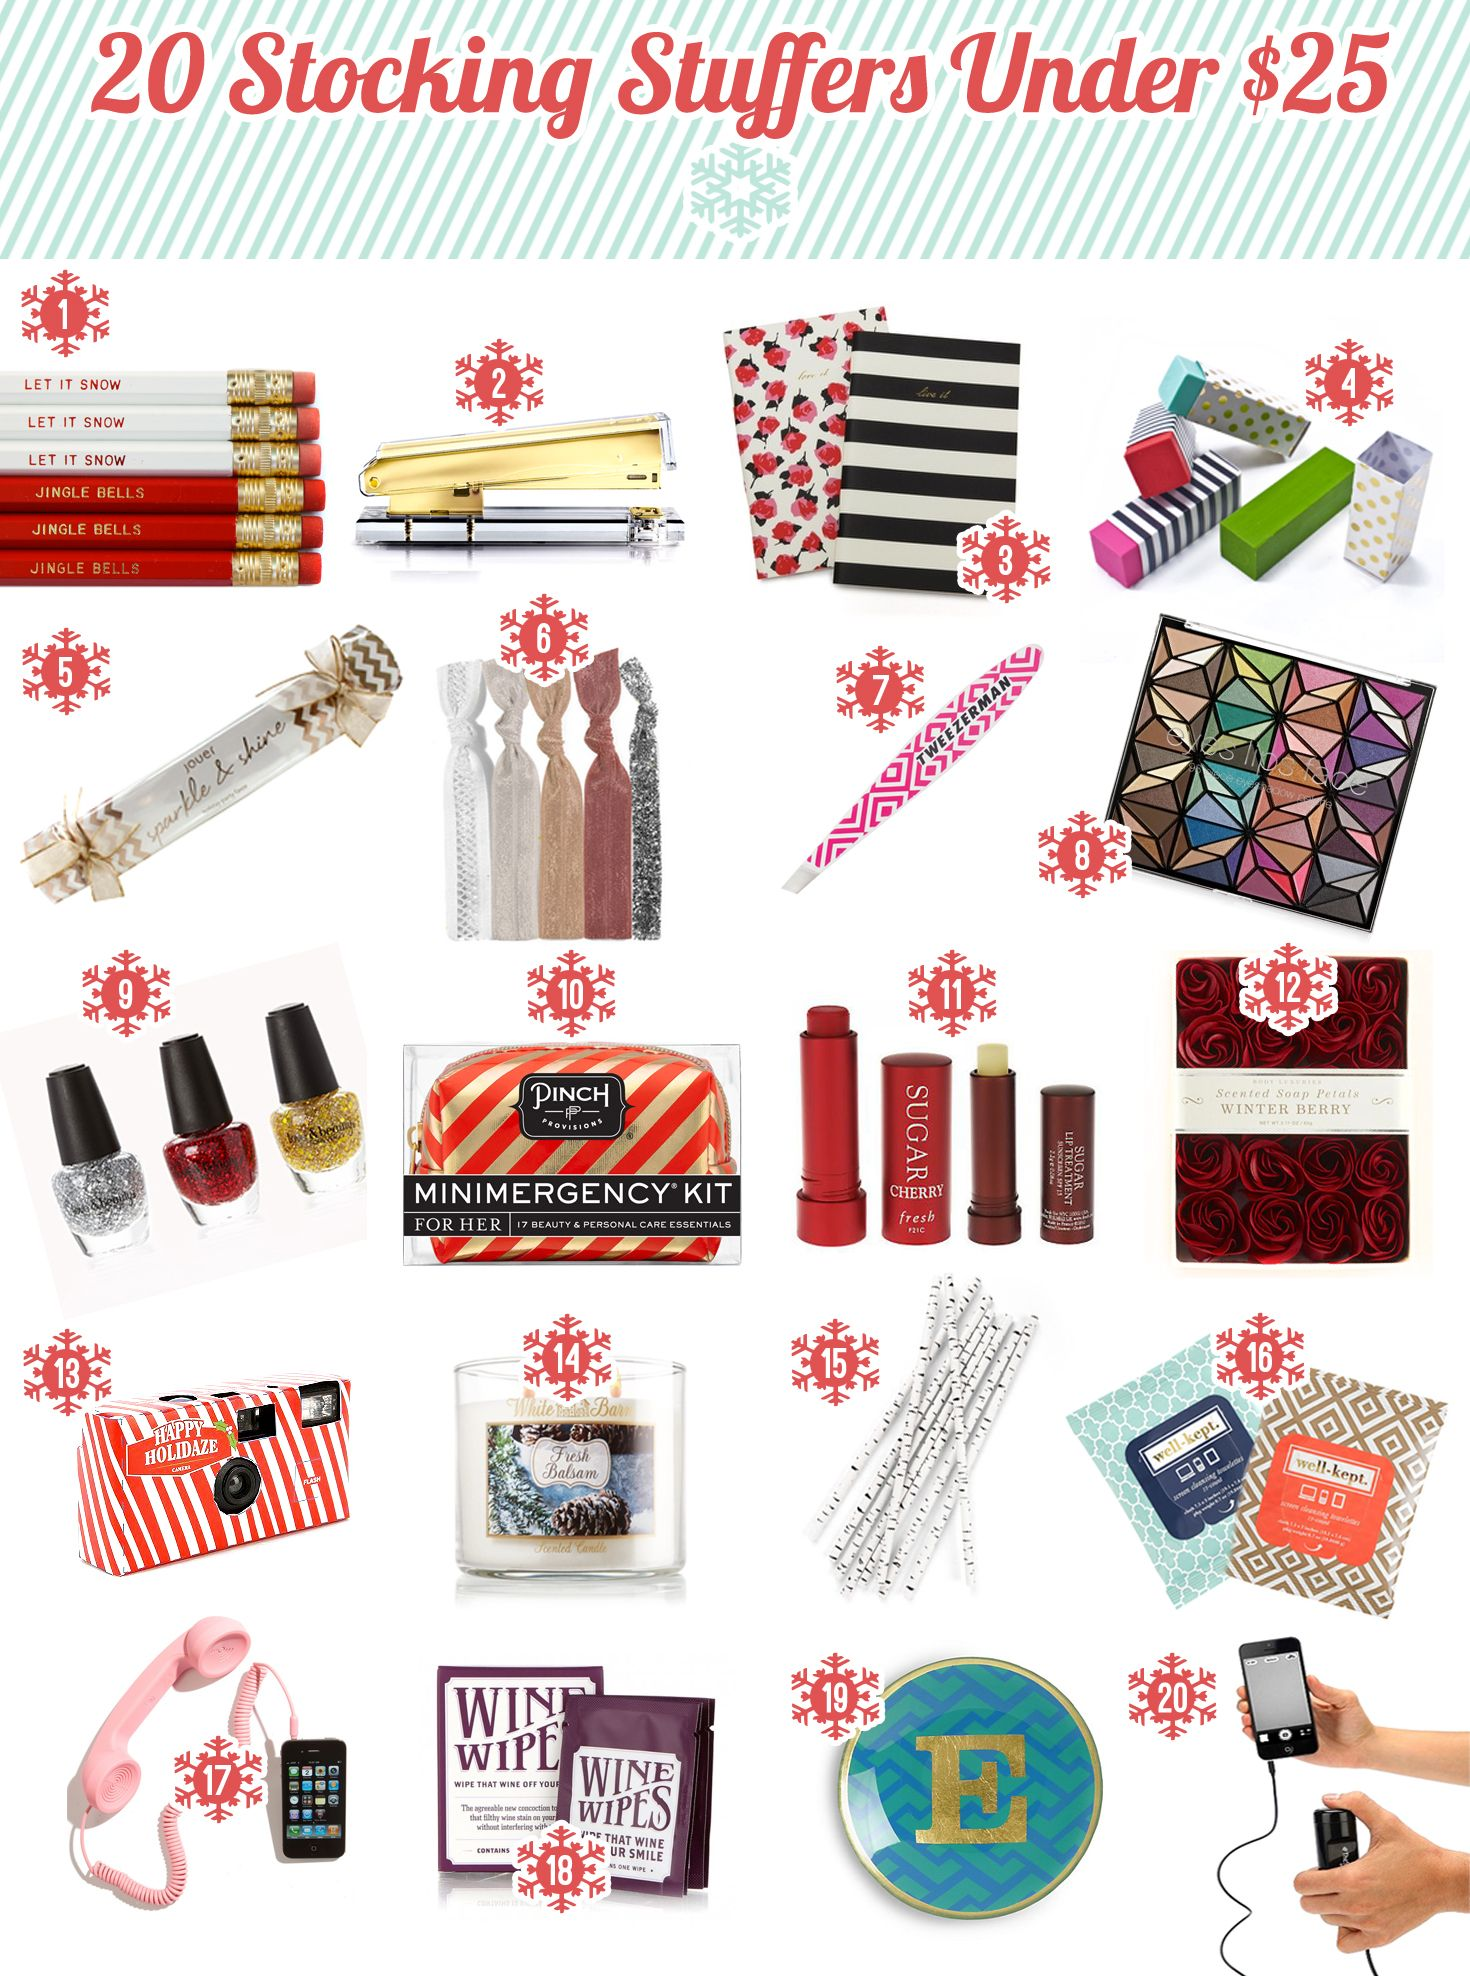 2013 holiday gift guide secret santa gift ideas under 25 for best christmas gifts for secret - Best Christmas Gifts Under 25